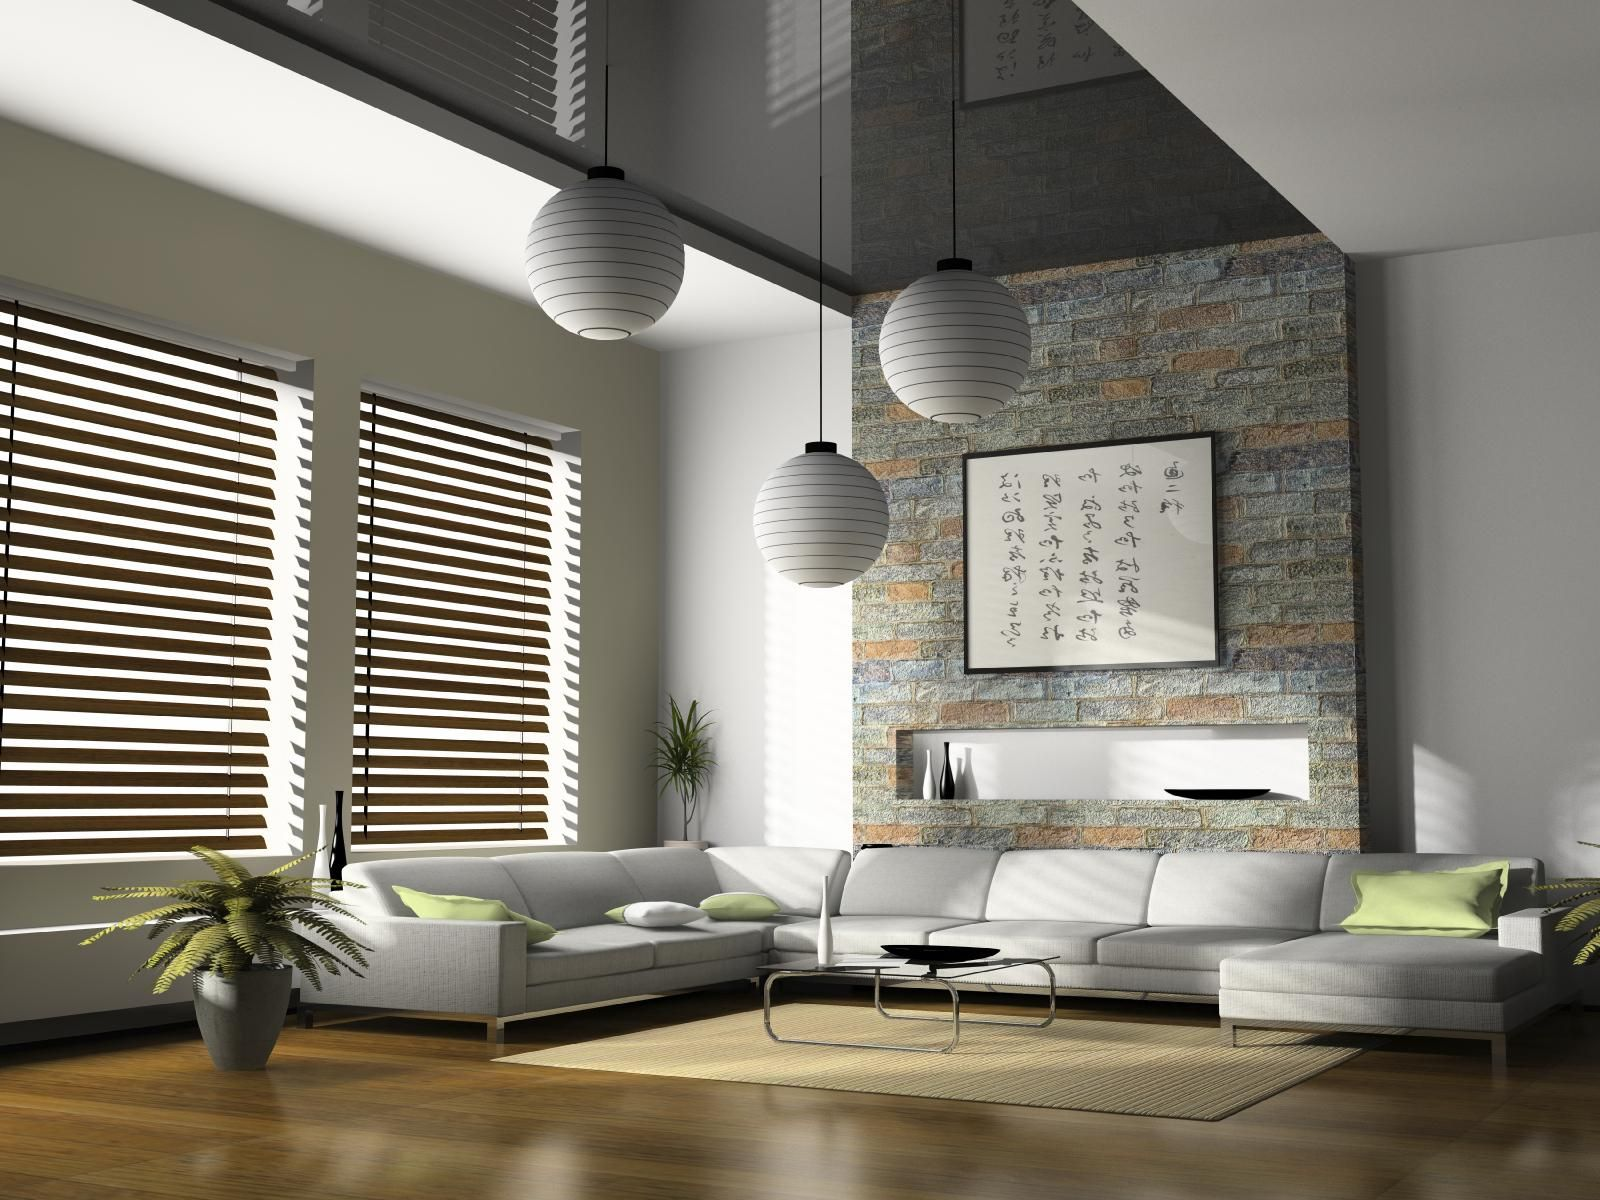 Fashionable window blinds design in modern style living for Modern look living room